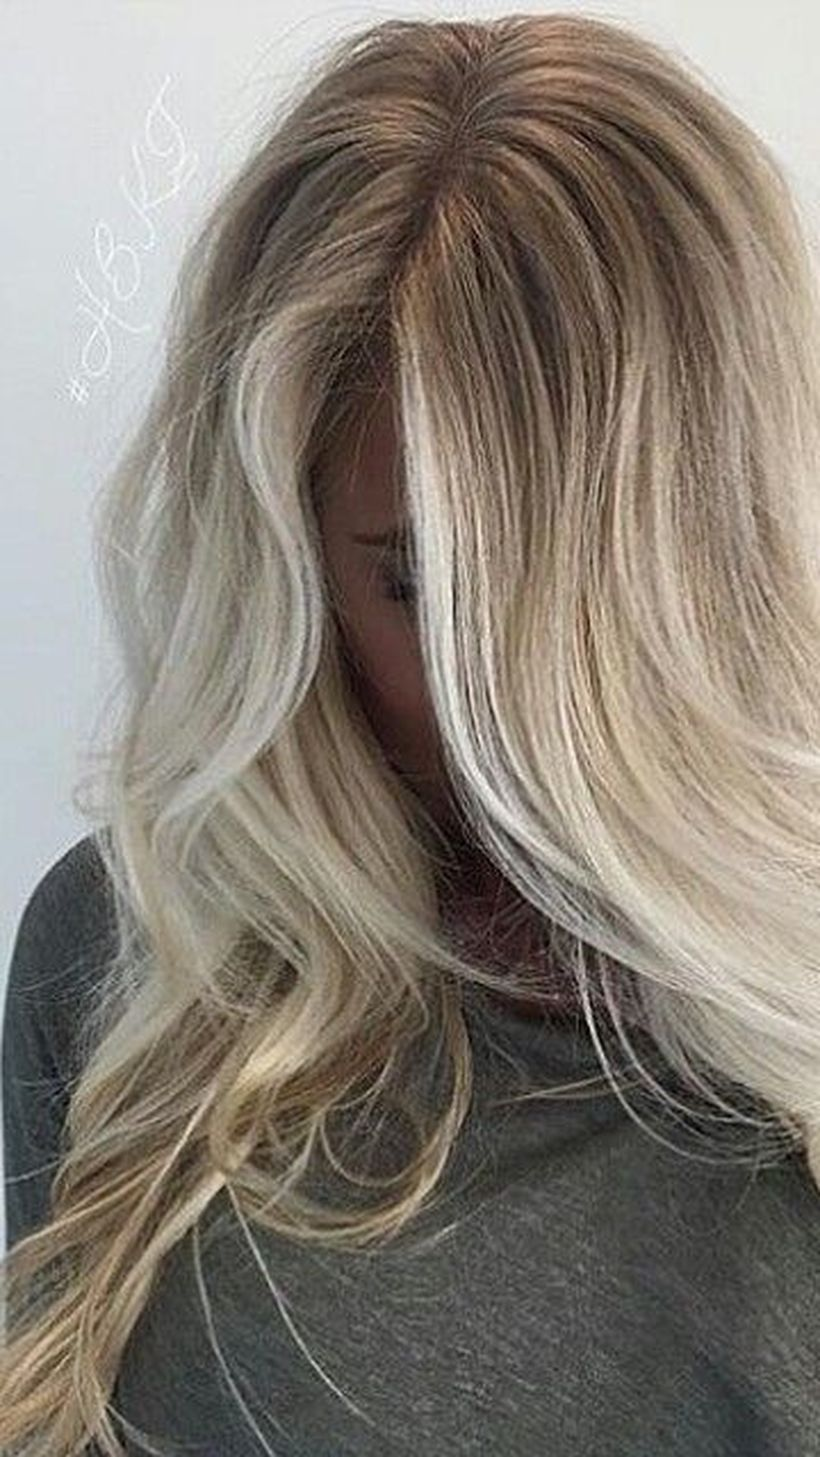 Stunning fall hair colors ideas for brunettes 2017 16